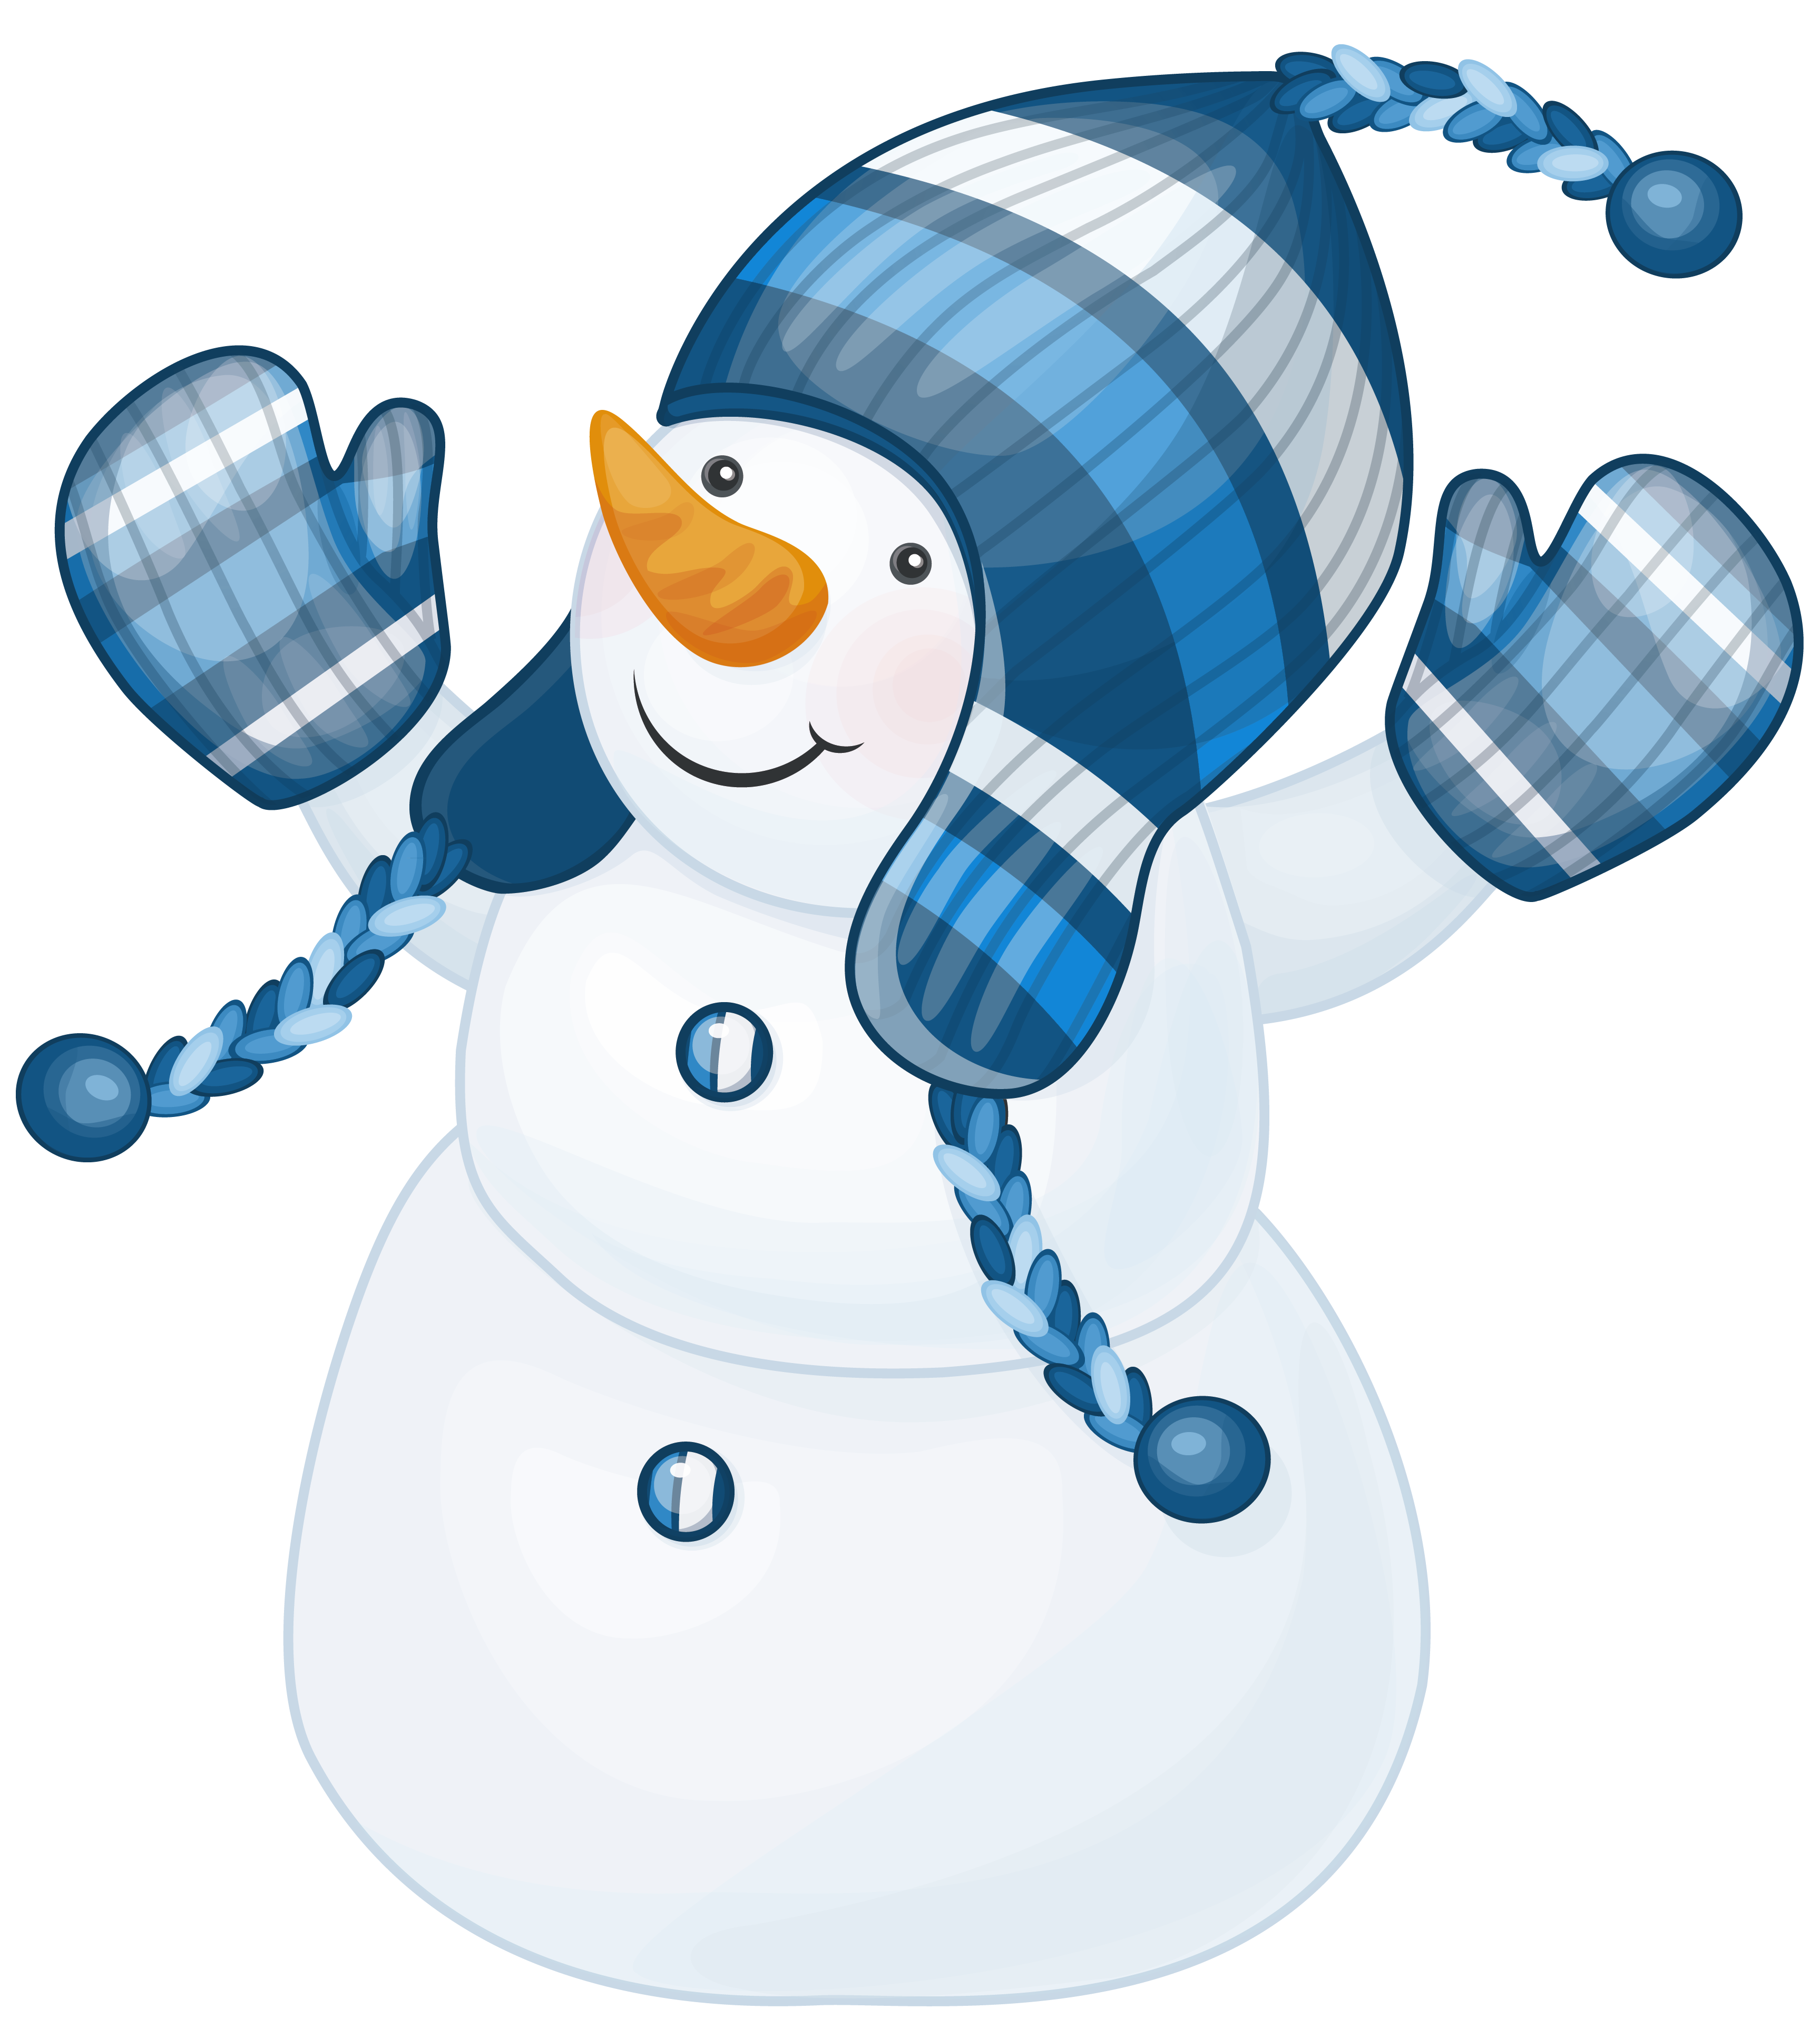 Snowman With Blue Hat Clipart-Snowman With Blue Hat Clipart-16